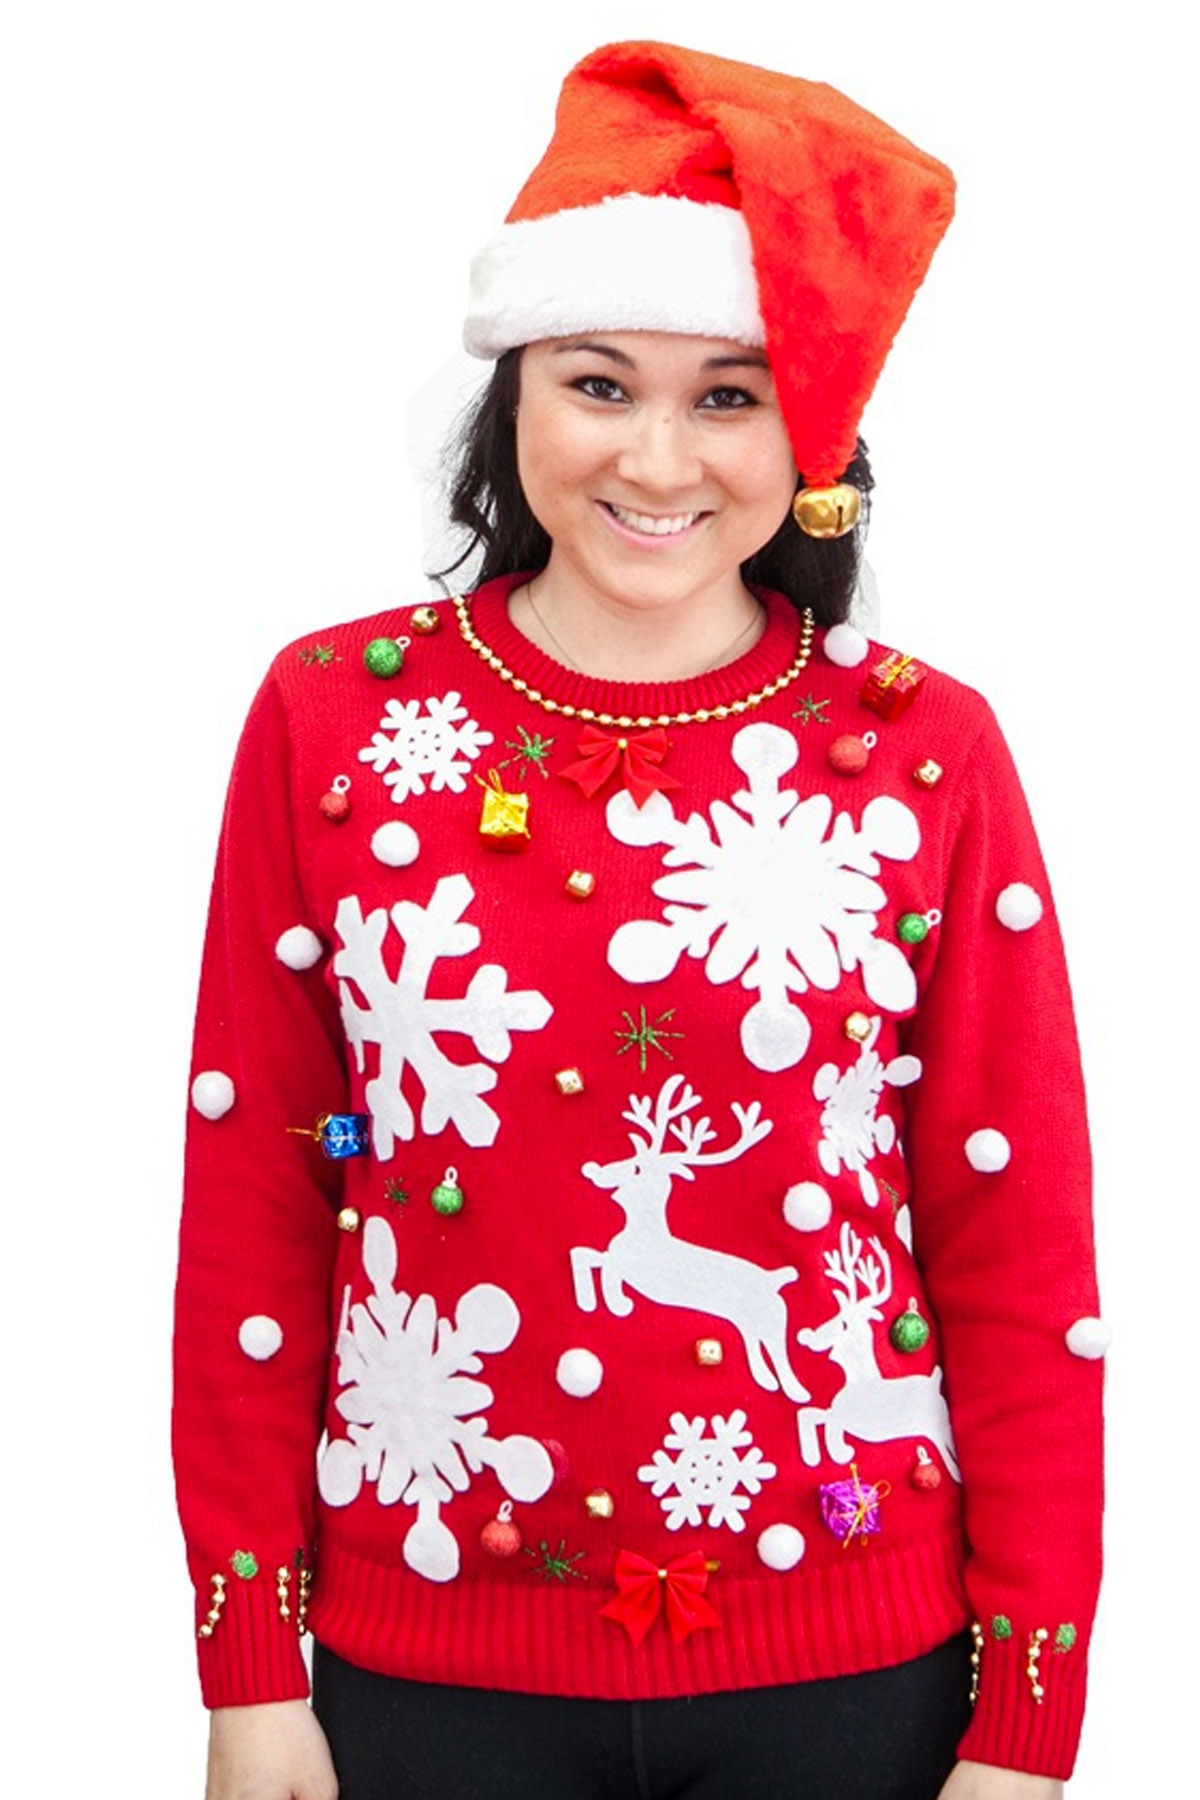 You searched for: christmas sweater! Etsy is the home to thousands of handmade, vintage, and one-of-a-kind products and gifts related to your search. No matter what you're looking for or where you are in the world, our global marketplace of sellers can help you find unique and affordable options. Let's get started!